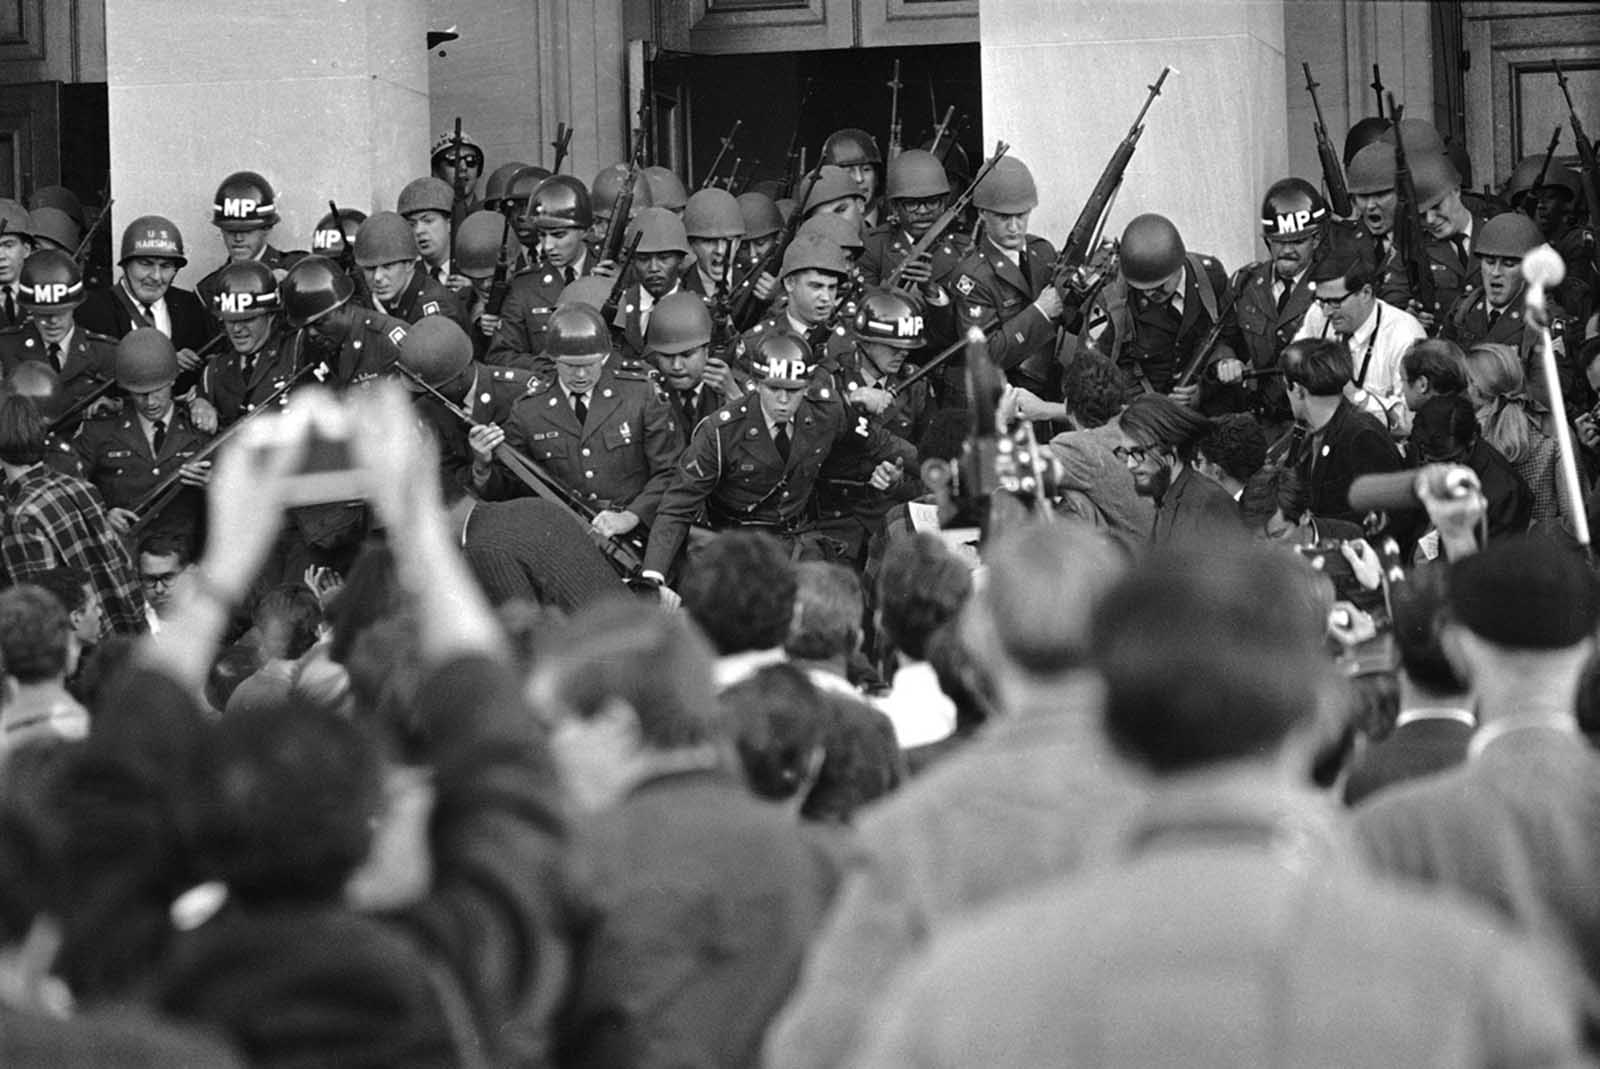 Military police, reinforced by Army troops, throw back anti-war demonstrators as they tried to storm a mall entrance doorway at the Pentagon in Washington, D.C., on October 21, 1967.